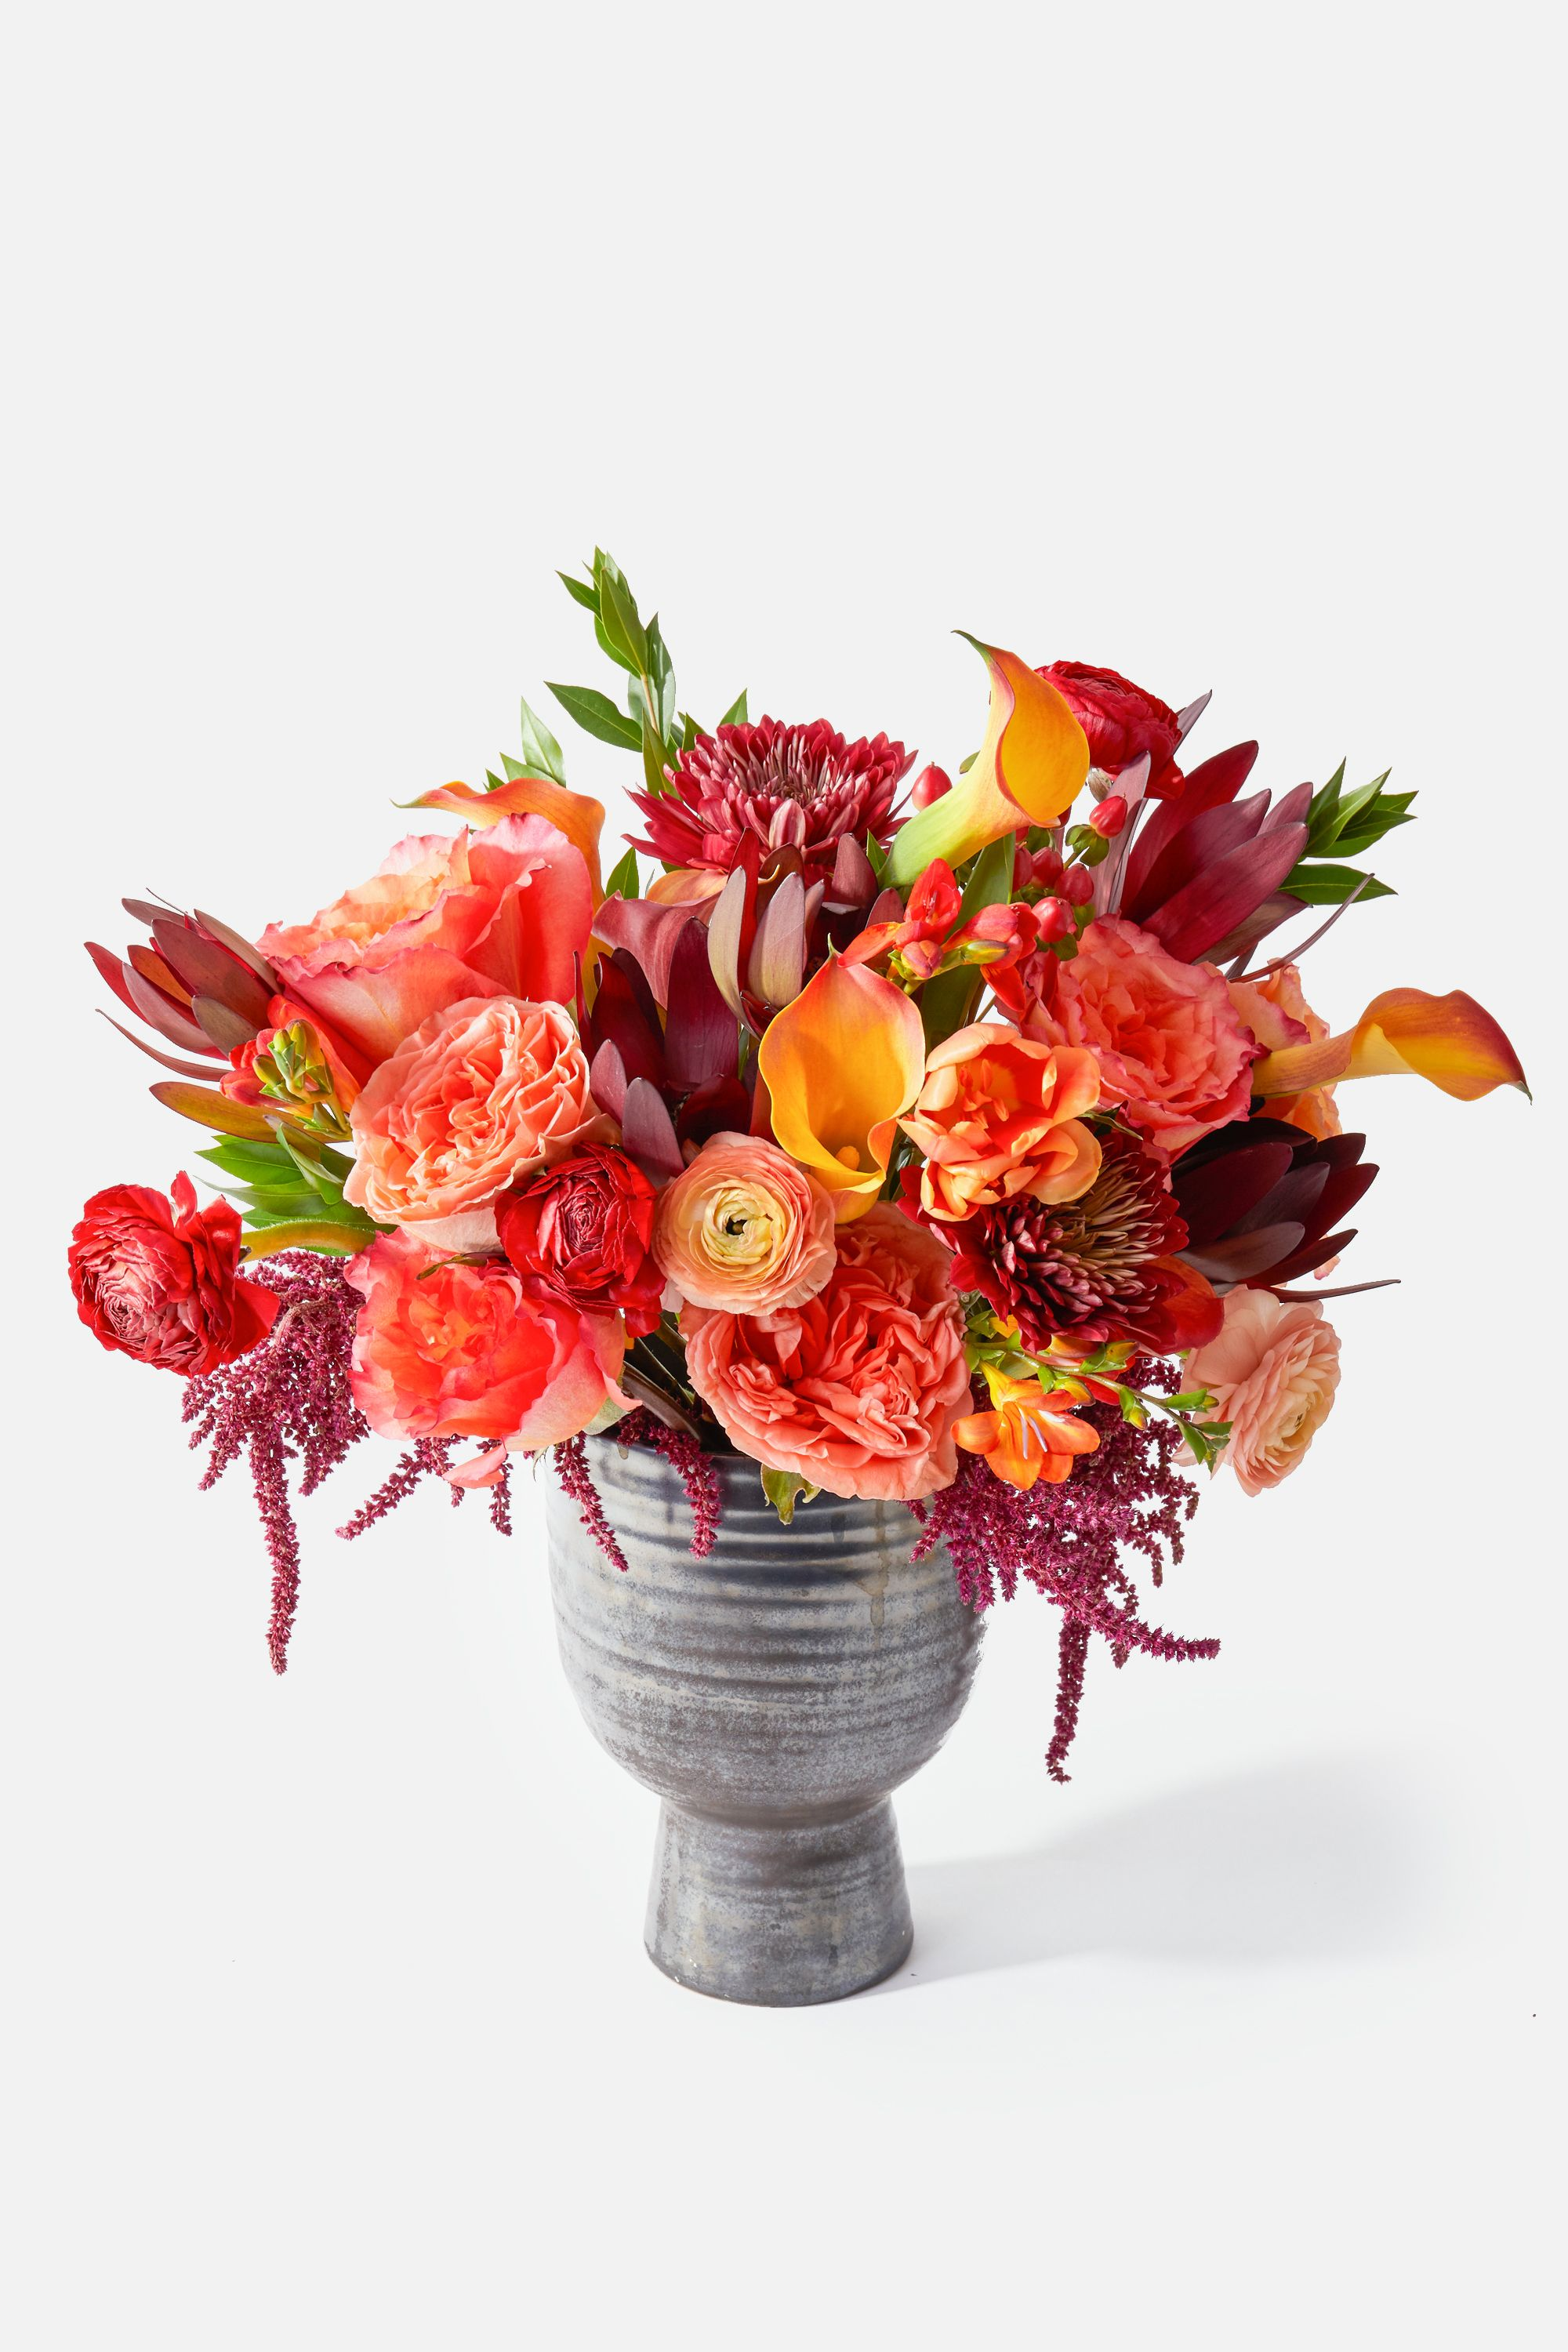 Gorgeous Fall Floral Arrangements Pretty Autumn Floral Arranging Ideas